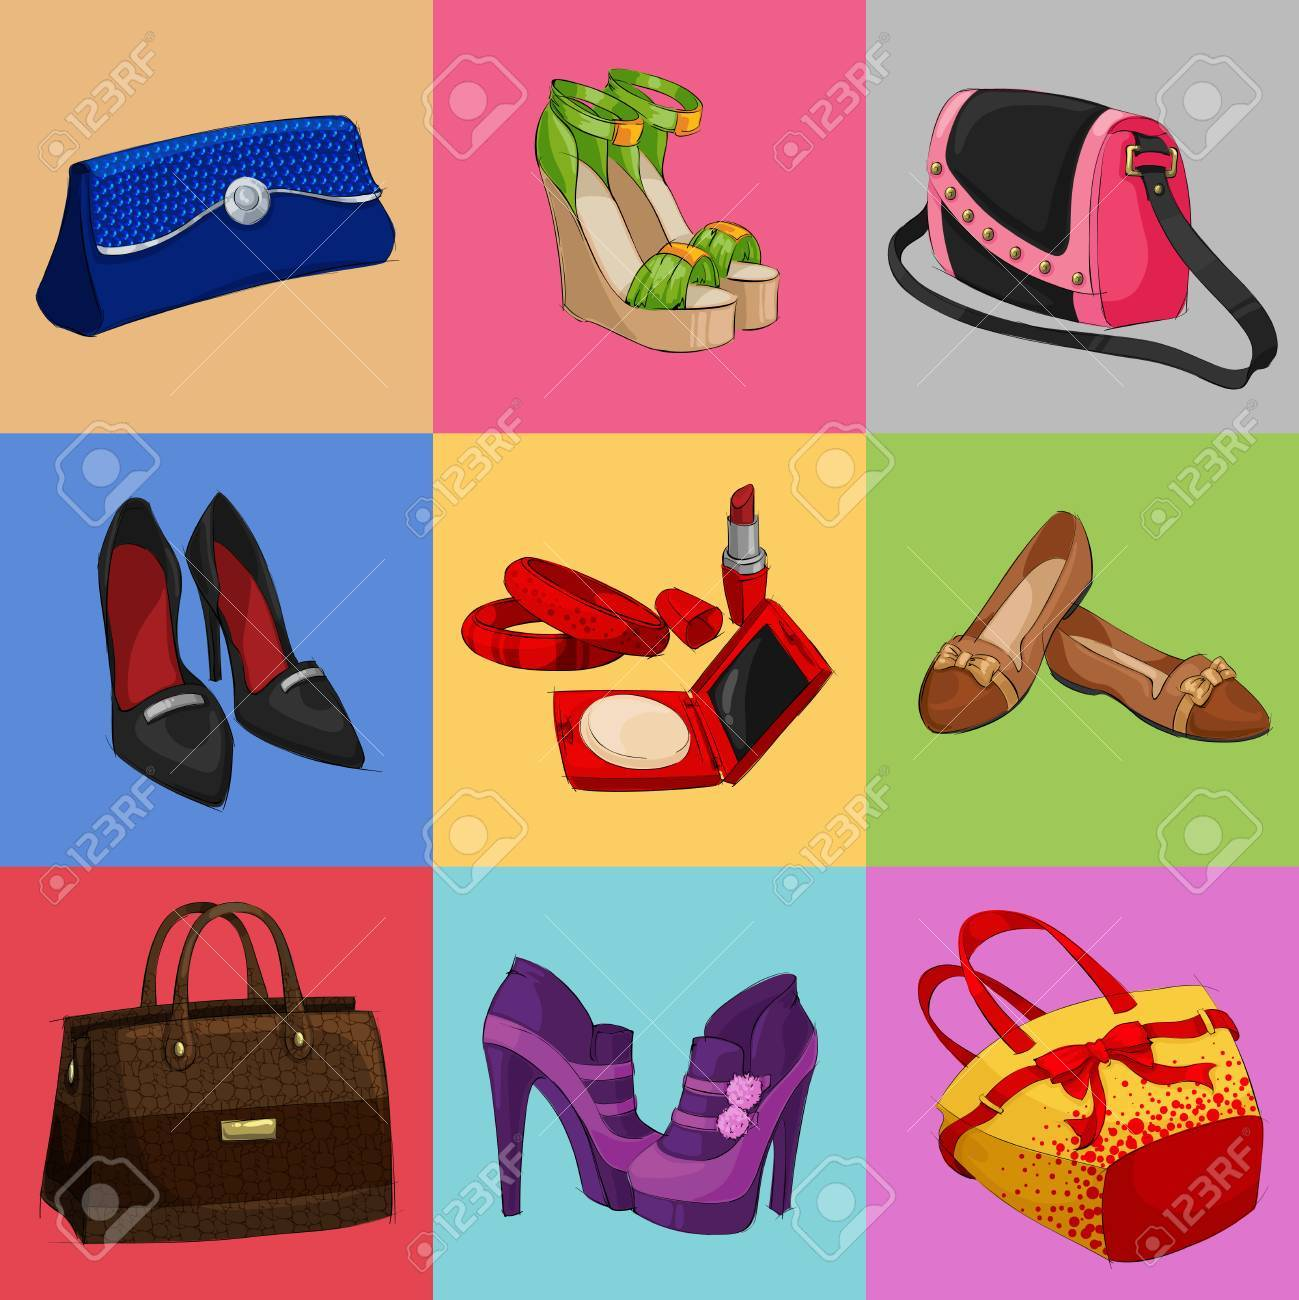 33cbc3ada Vector - Women fashion bags classic shoes and modern accessories collection  of decorative icons illustration